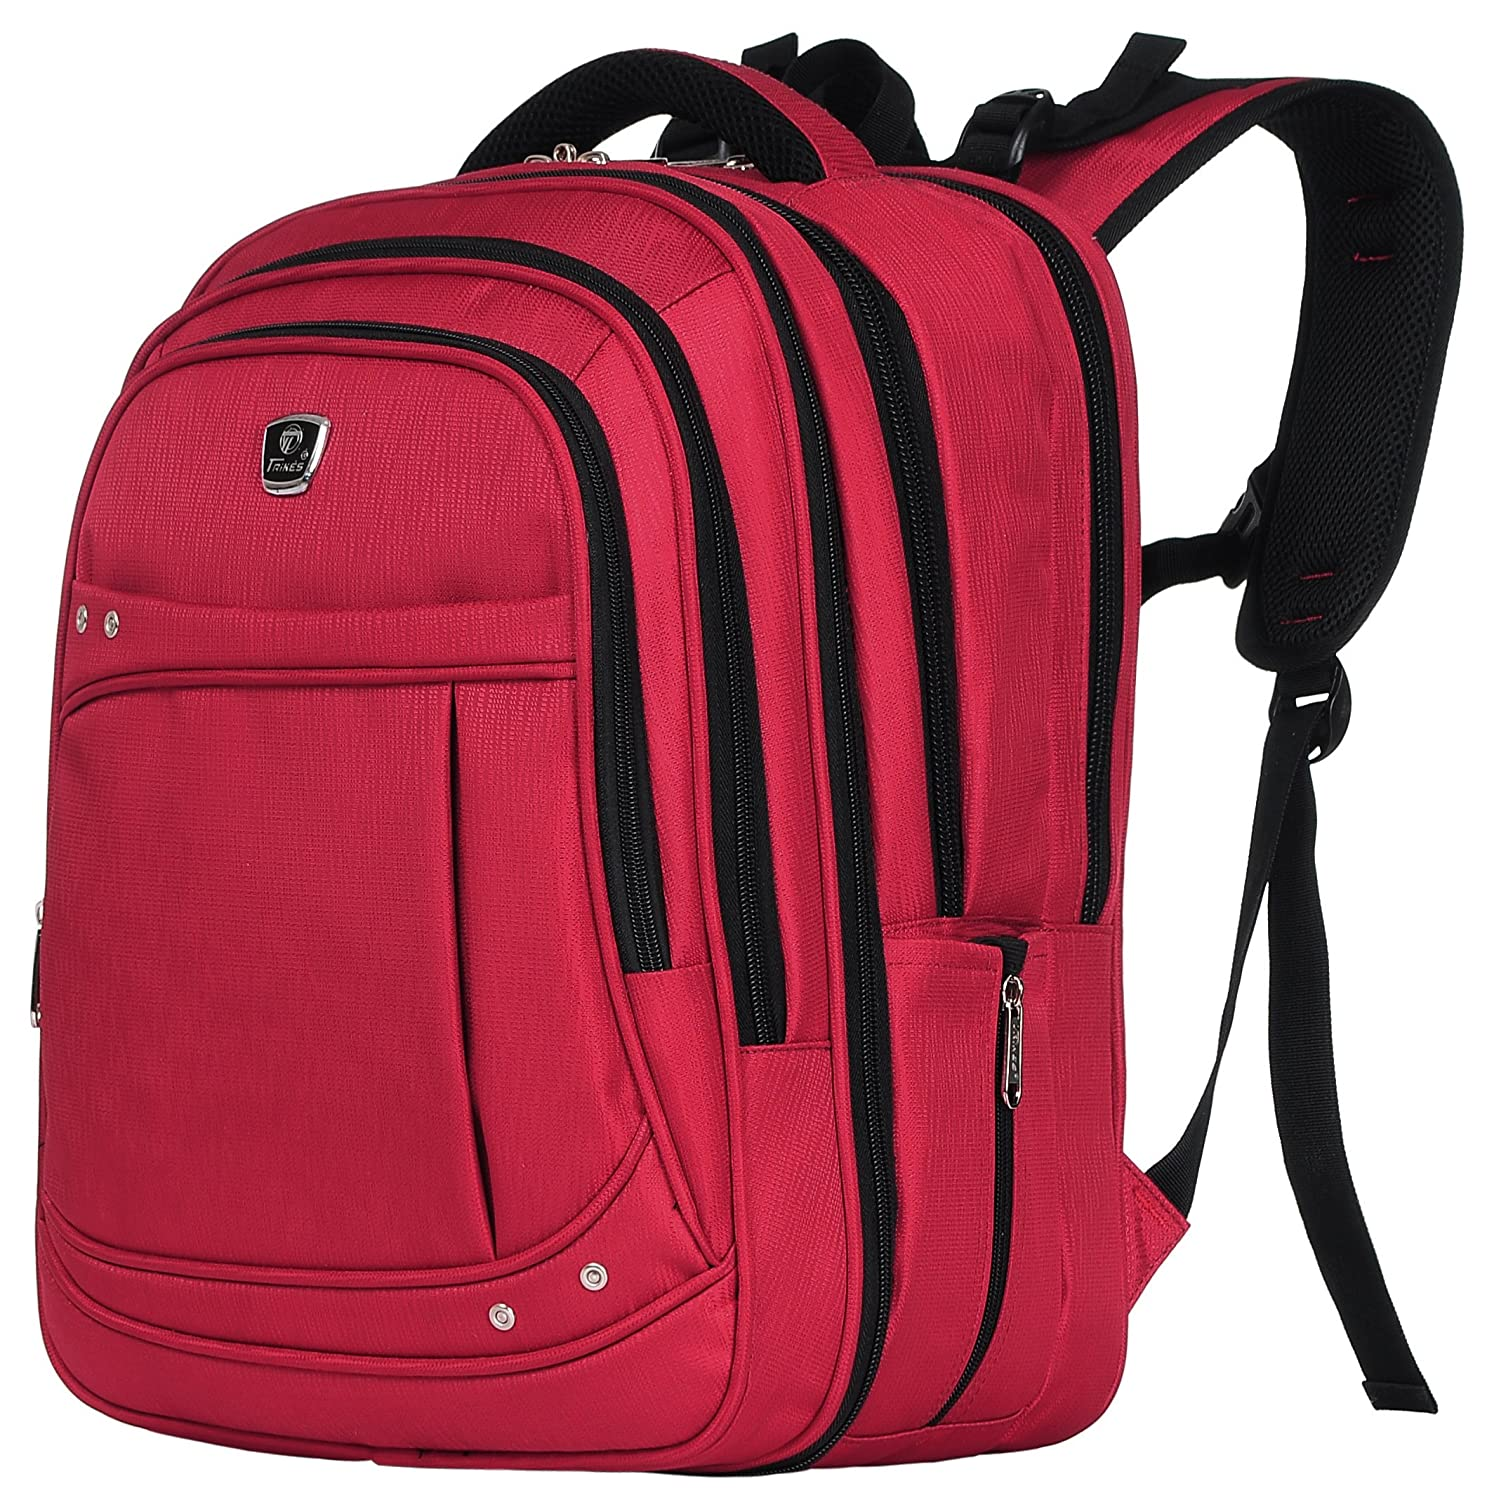 CHTAO Computer Laptop Backpacks for Daily Casual Daypacks School Backpacks Businees Backpacks Made with Waterproof Material Chen Tao